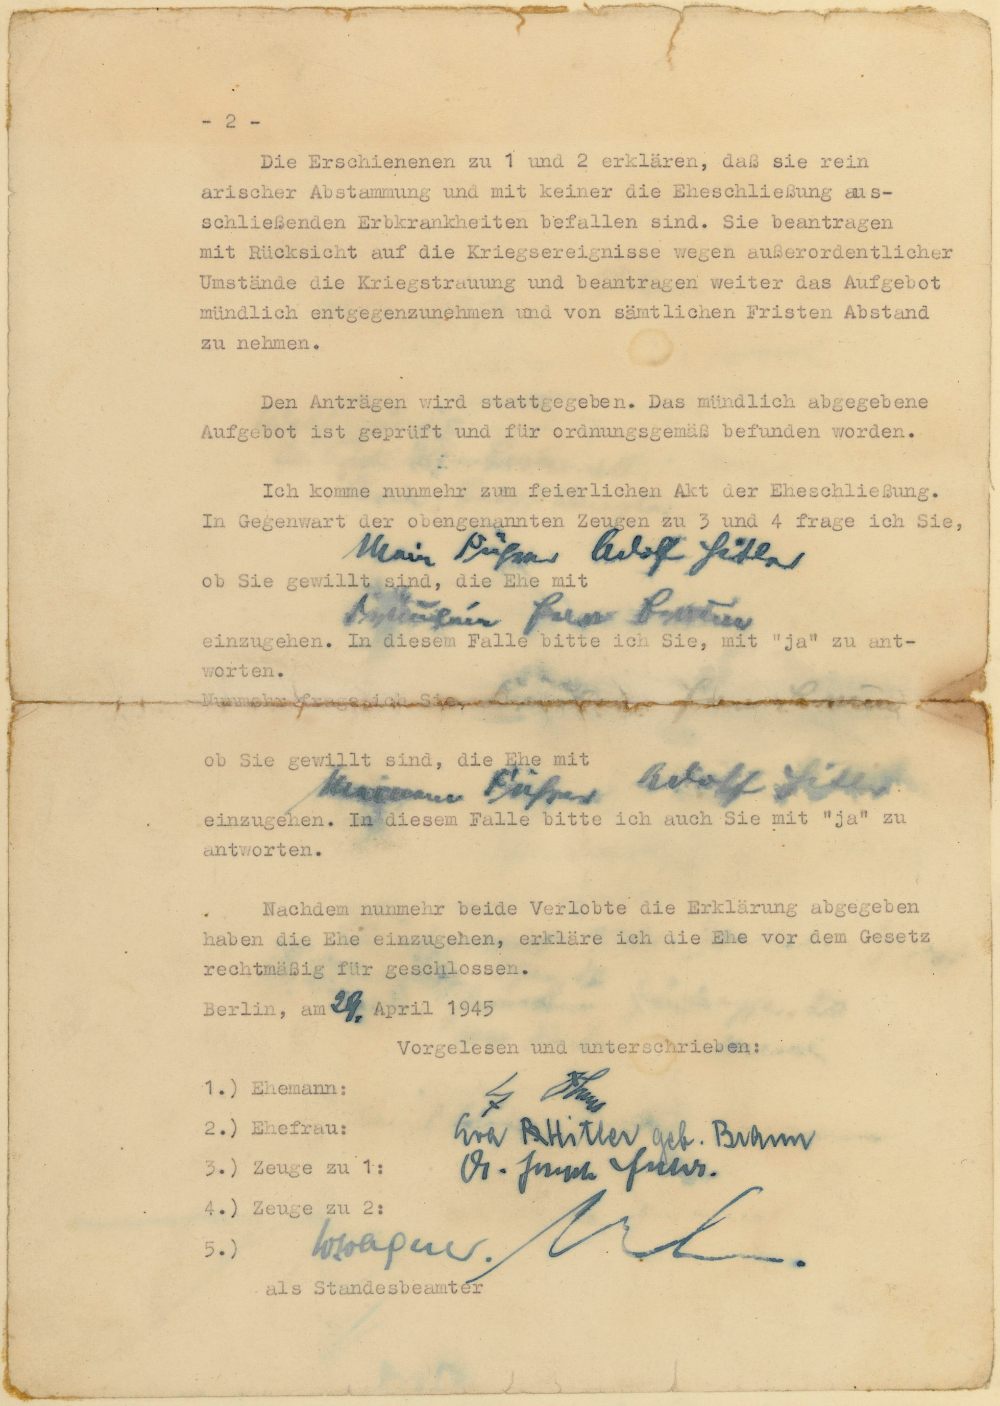 hitlers political testament personal will and marriage With documents in the national archives